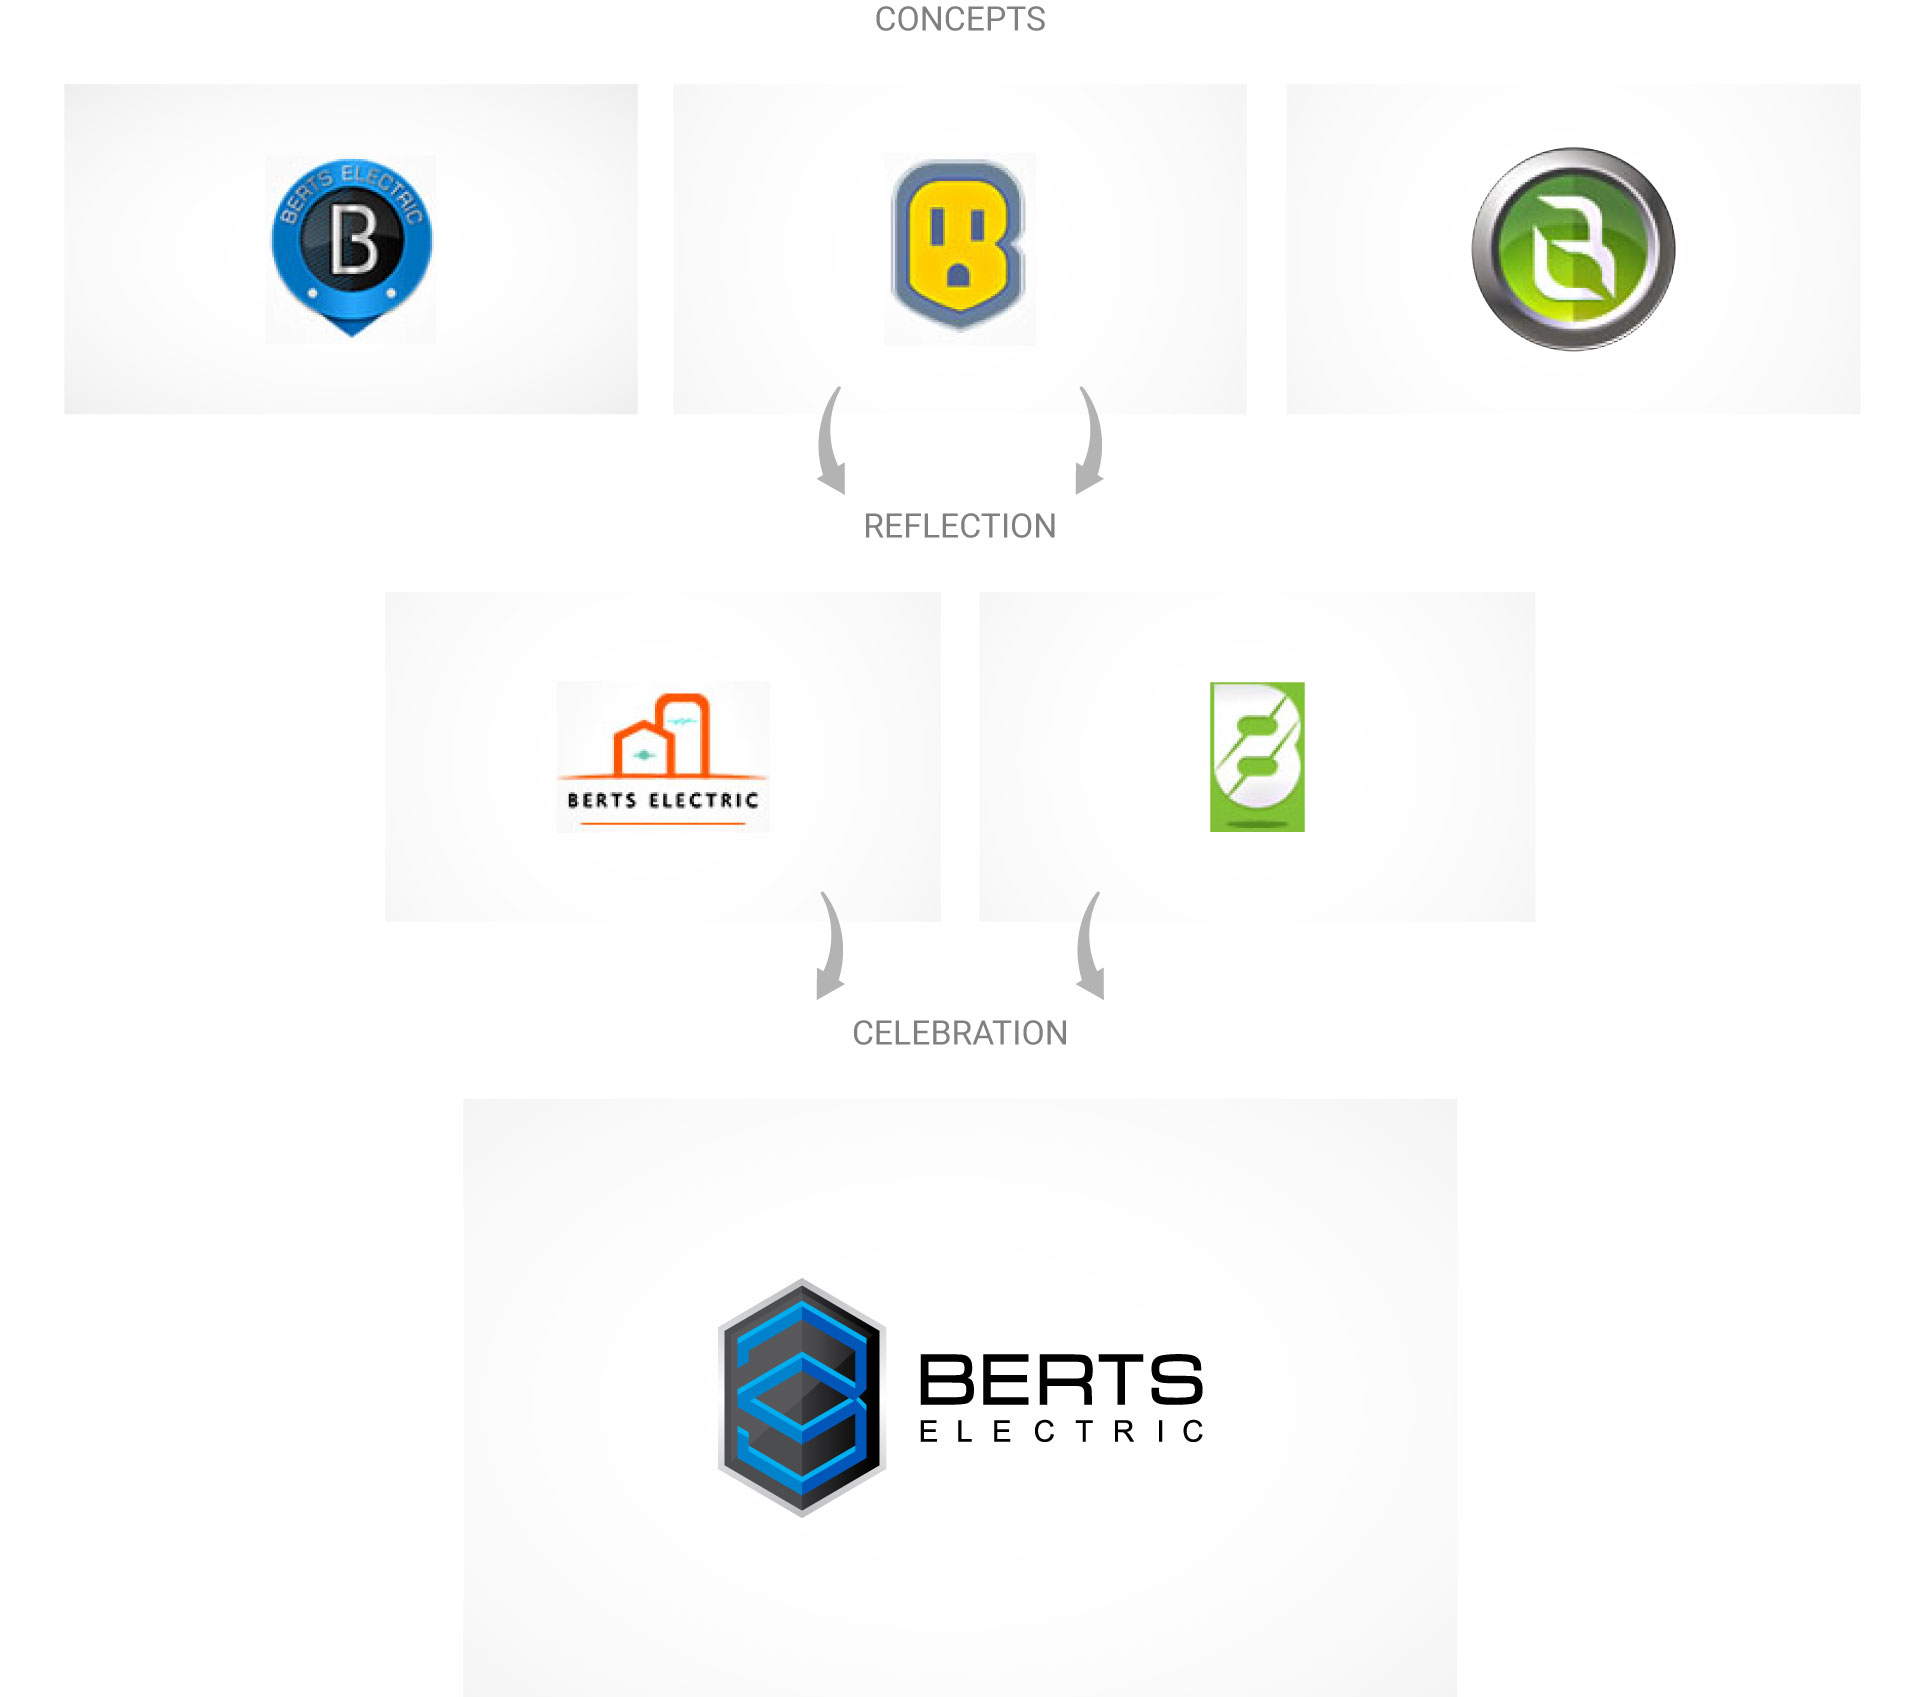 berts-electric-logo-design-process-by-mapleweb-vancouver-canada